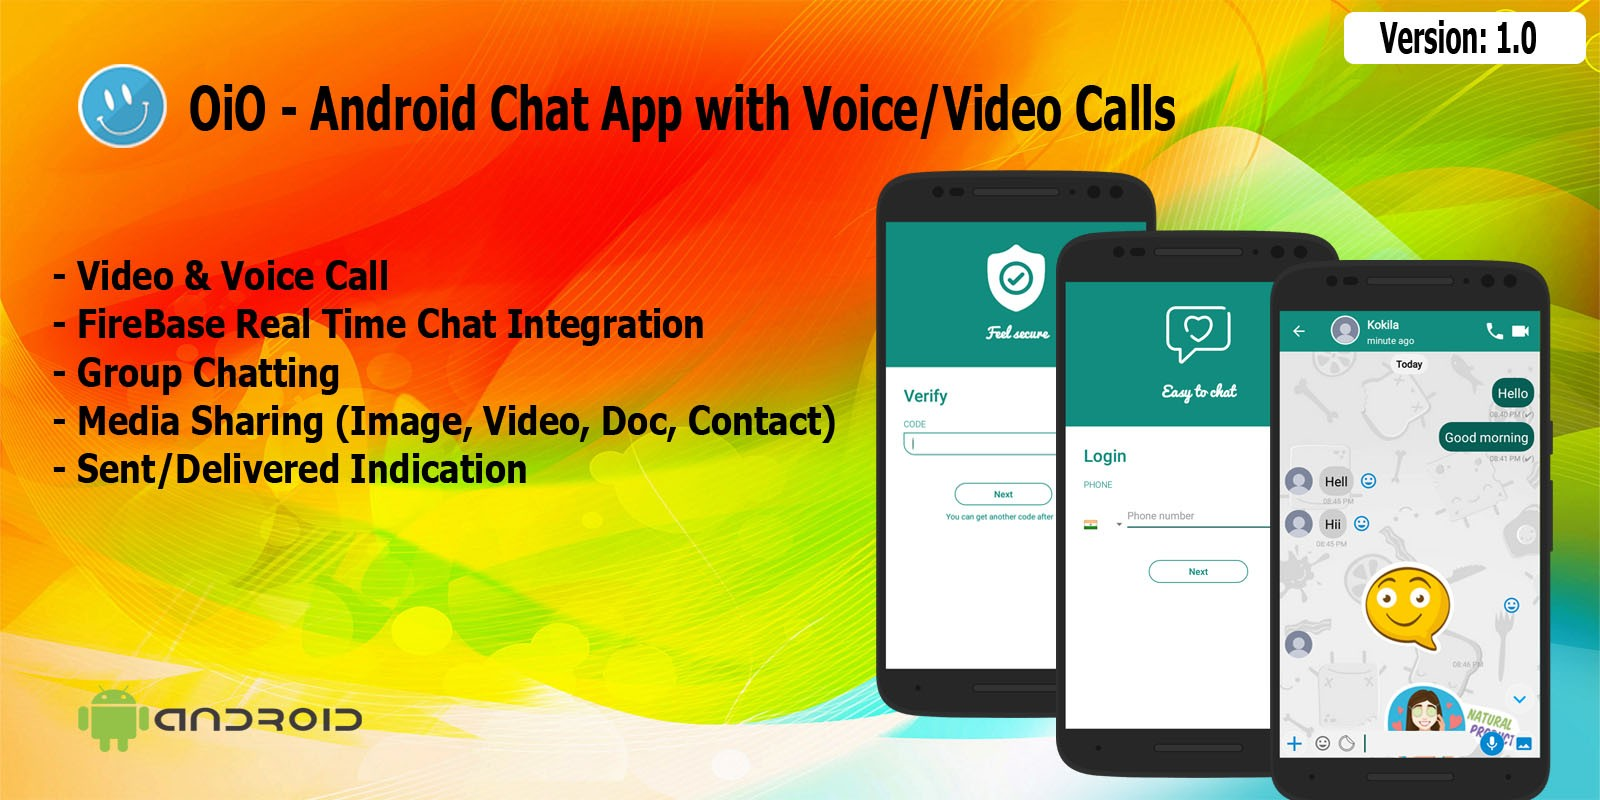 OiO - Android Chat App with Voice Video Calls